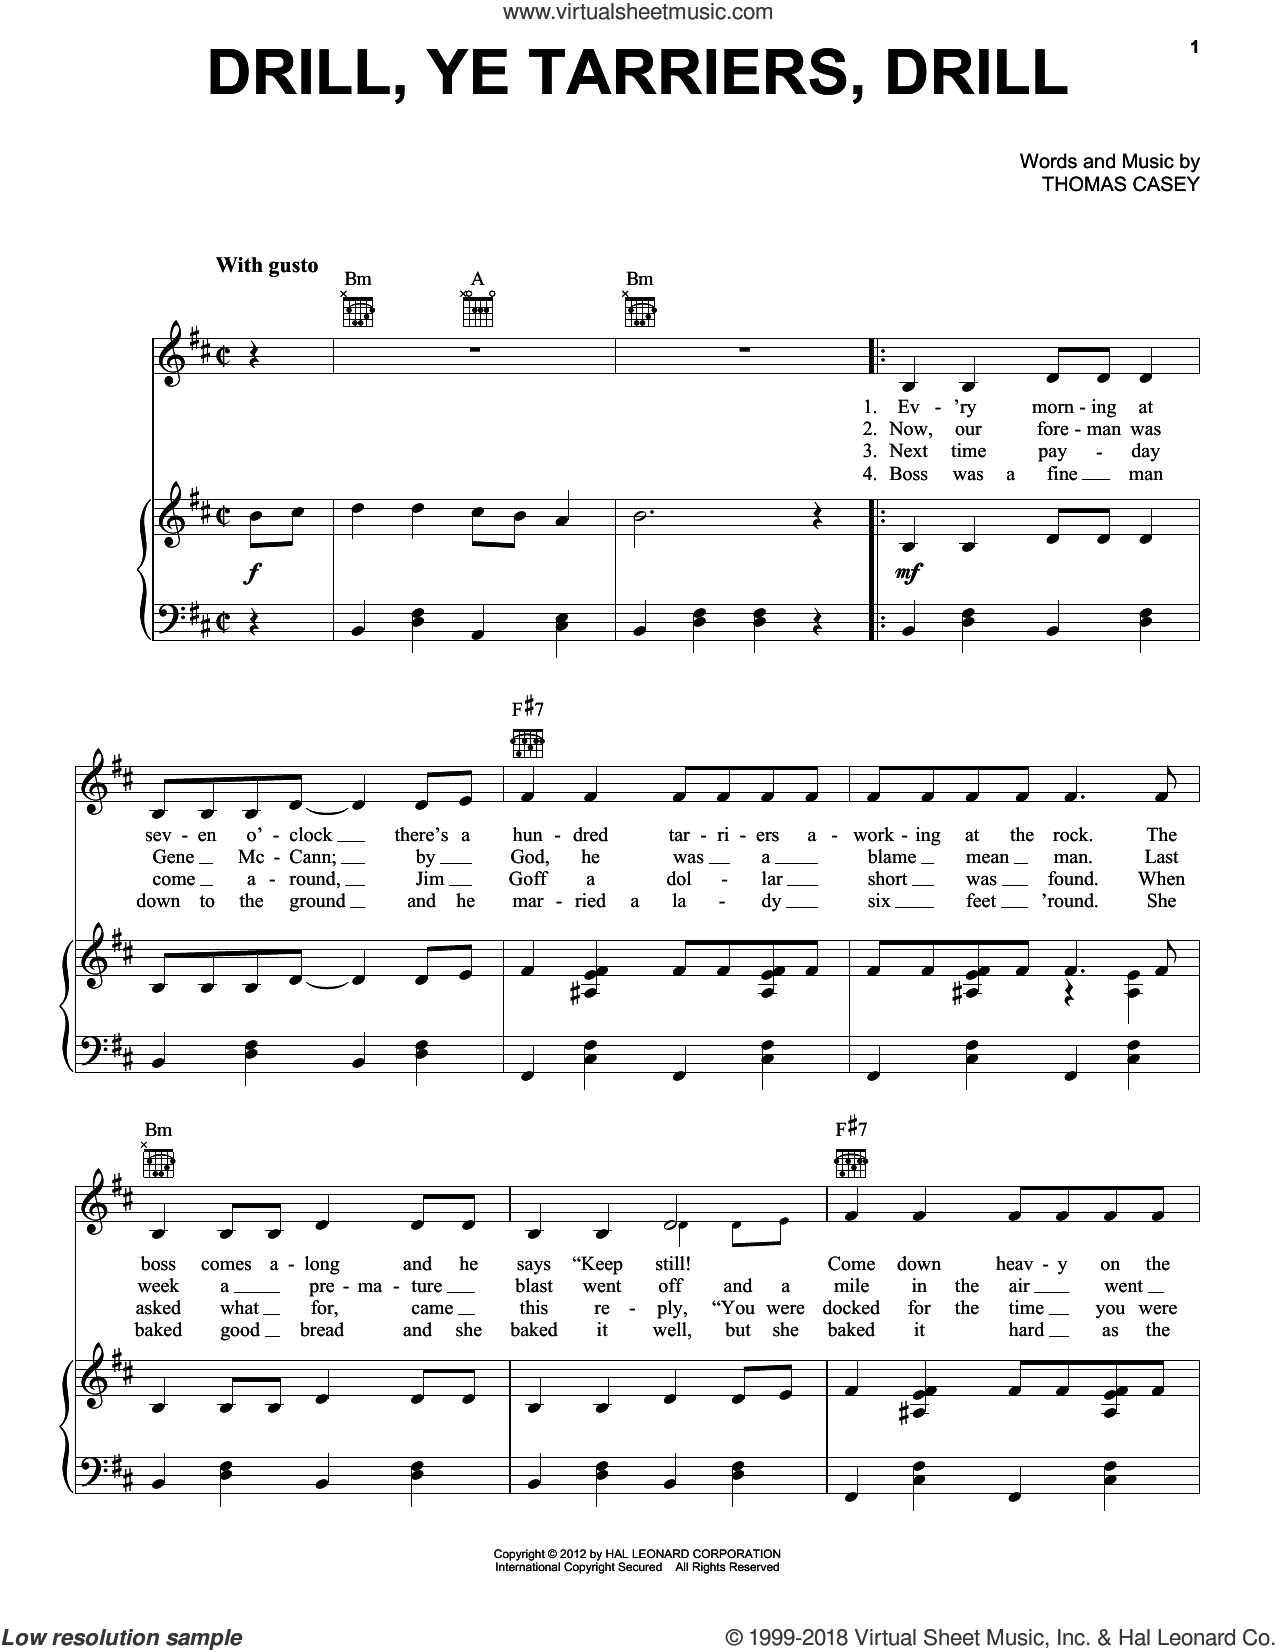 Drill Ye Tarriers sheet music for voice, piano or guitar by Thomas Casey, intermediate skill level